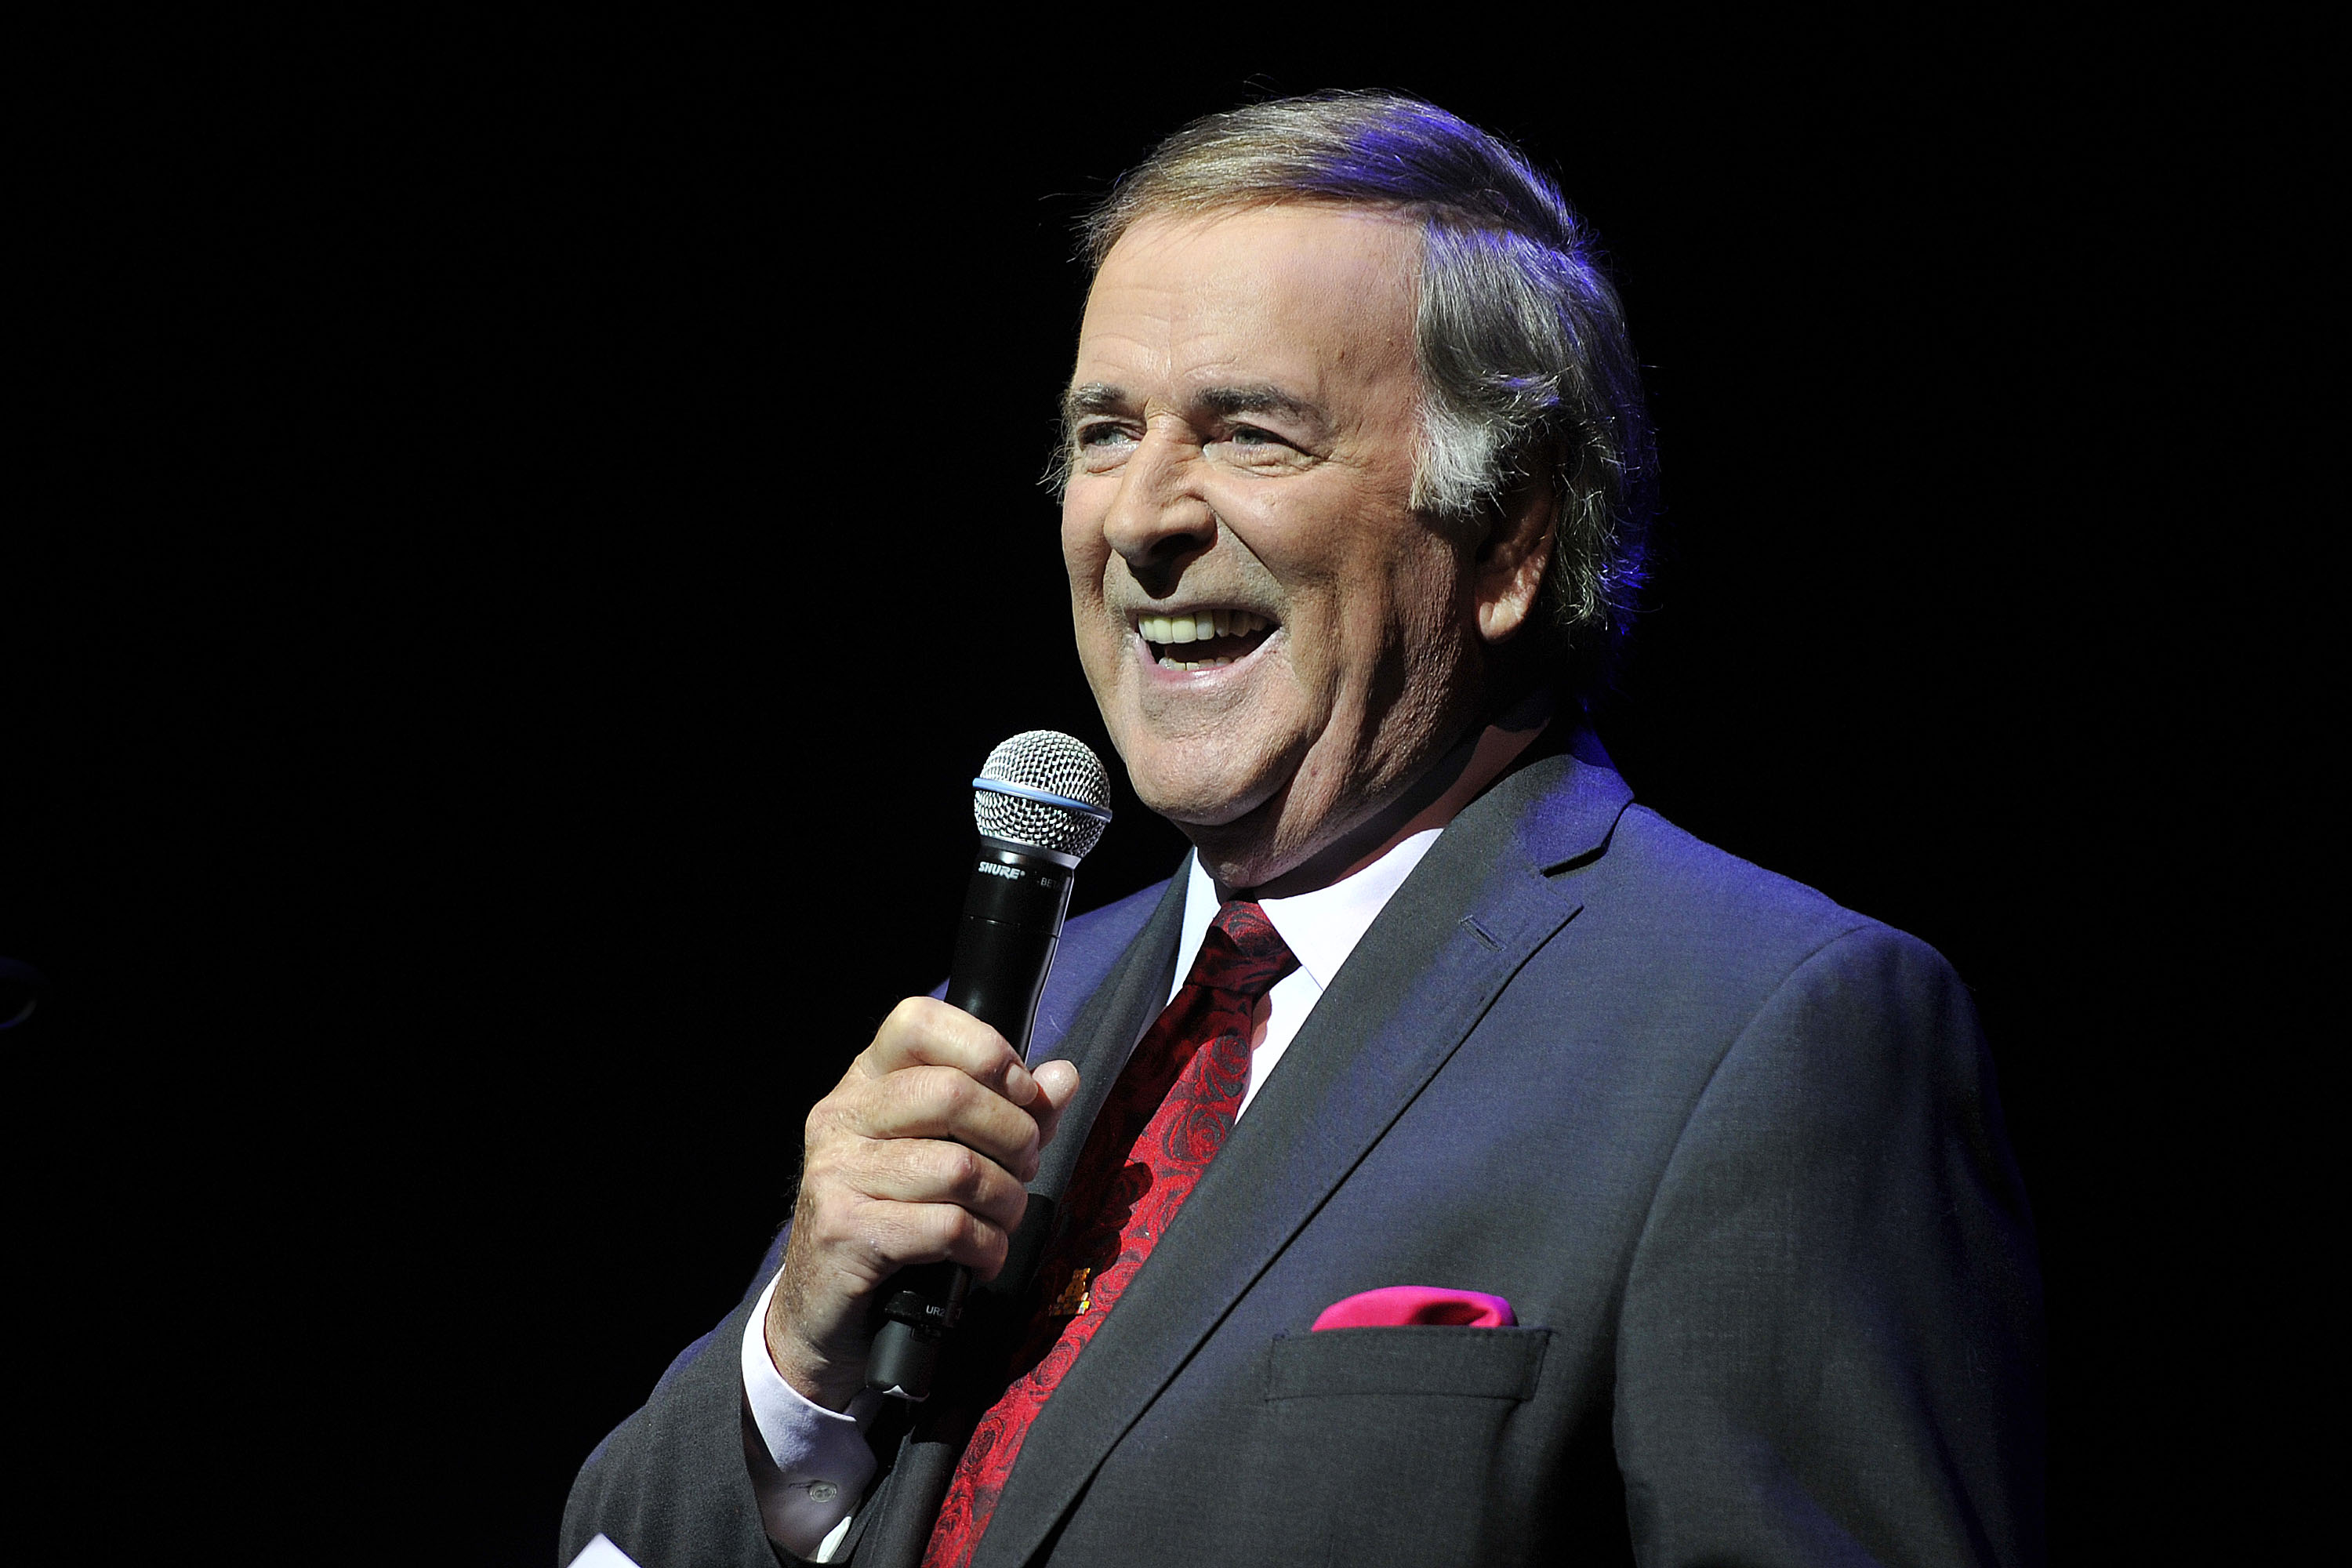 Terry Wogan at Children in Need Concert at The Savoy Theatre on 28th October 2012.  Loftus Media Photographer: Sarah Jeynes. © BBC.